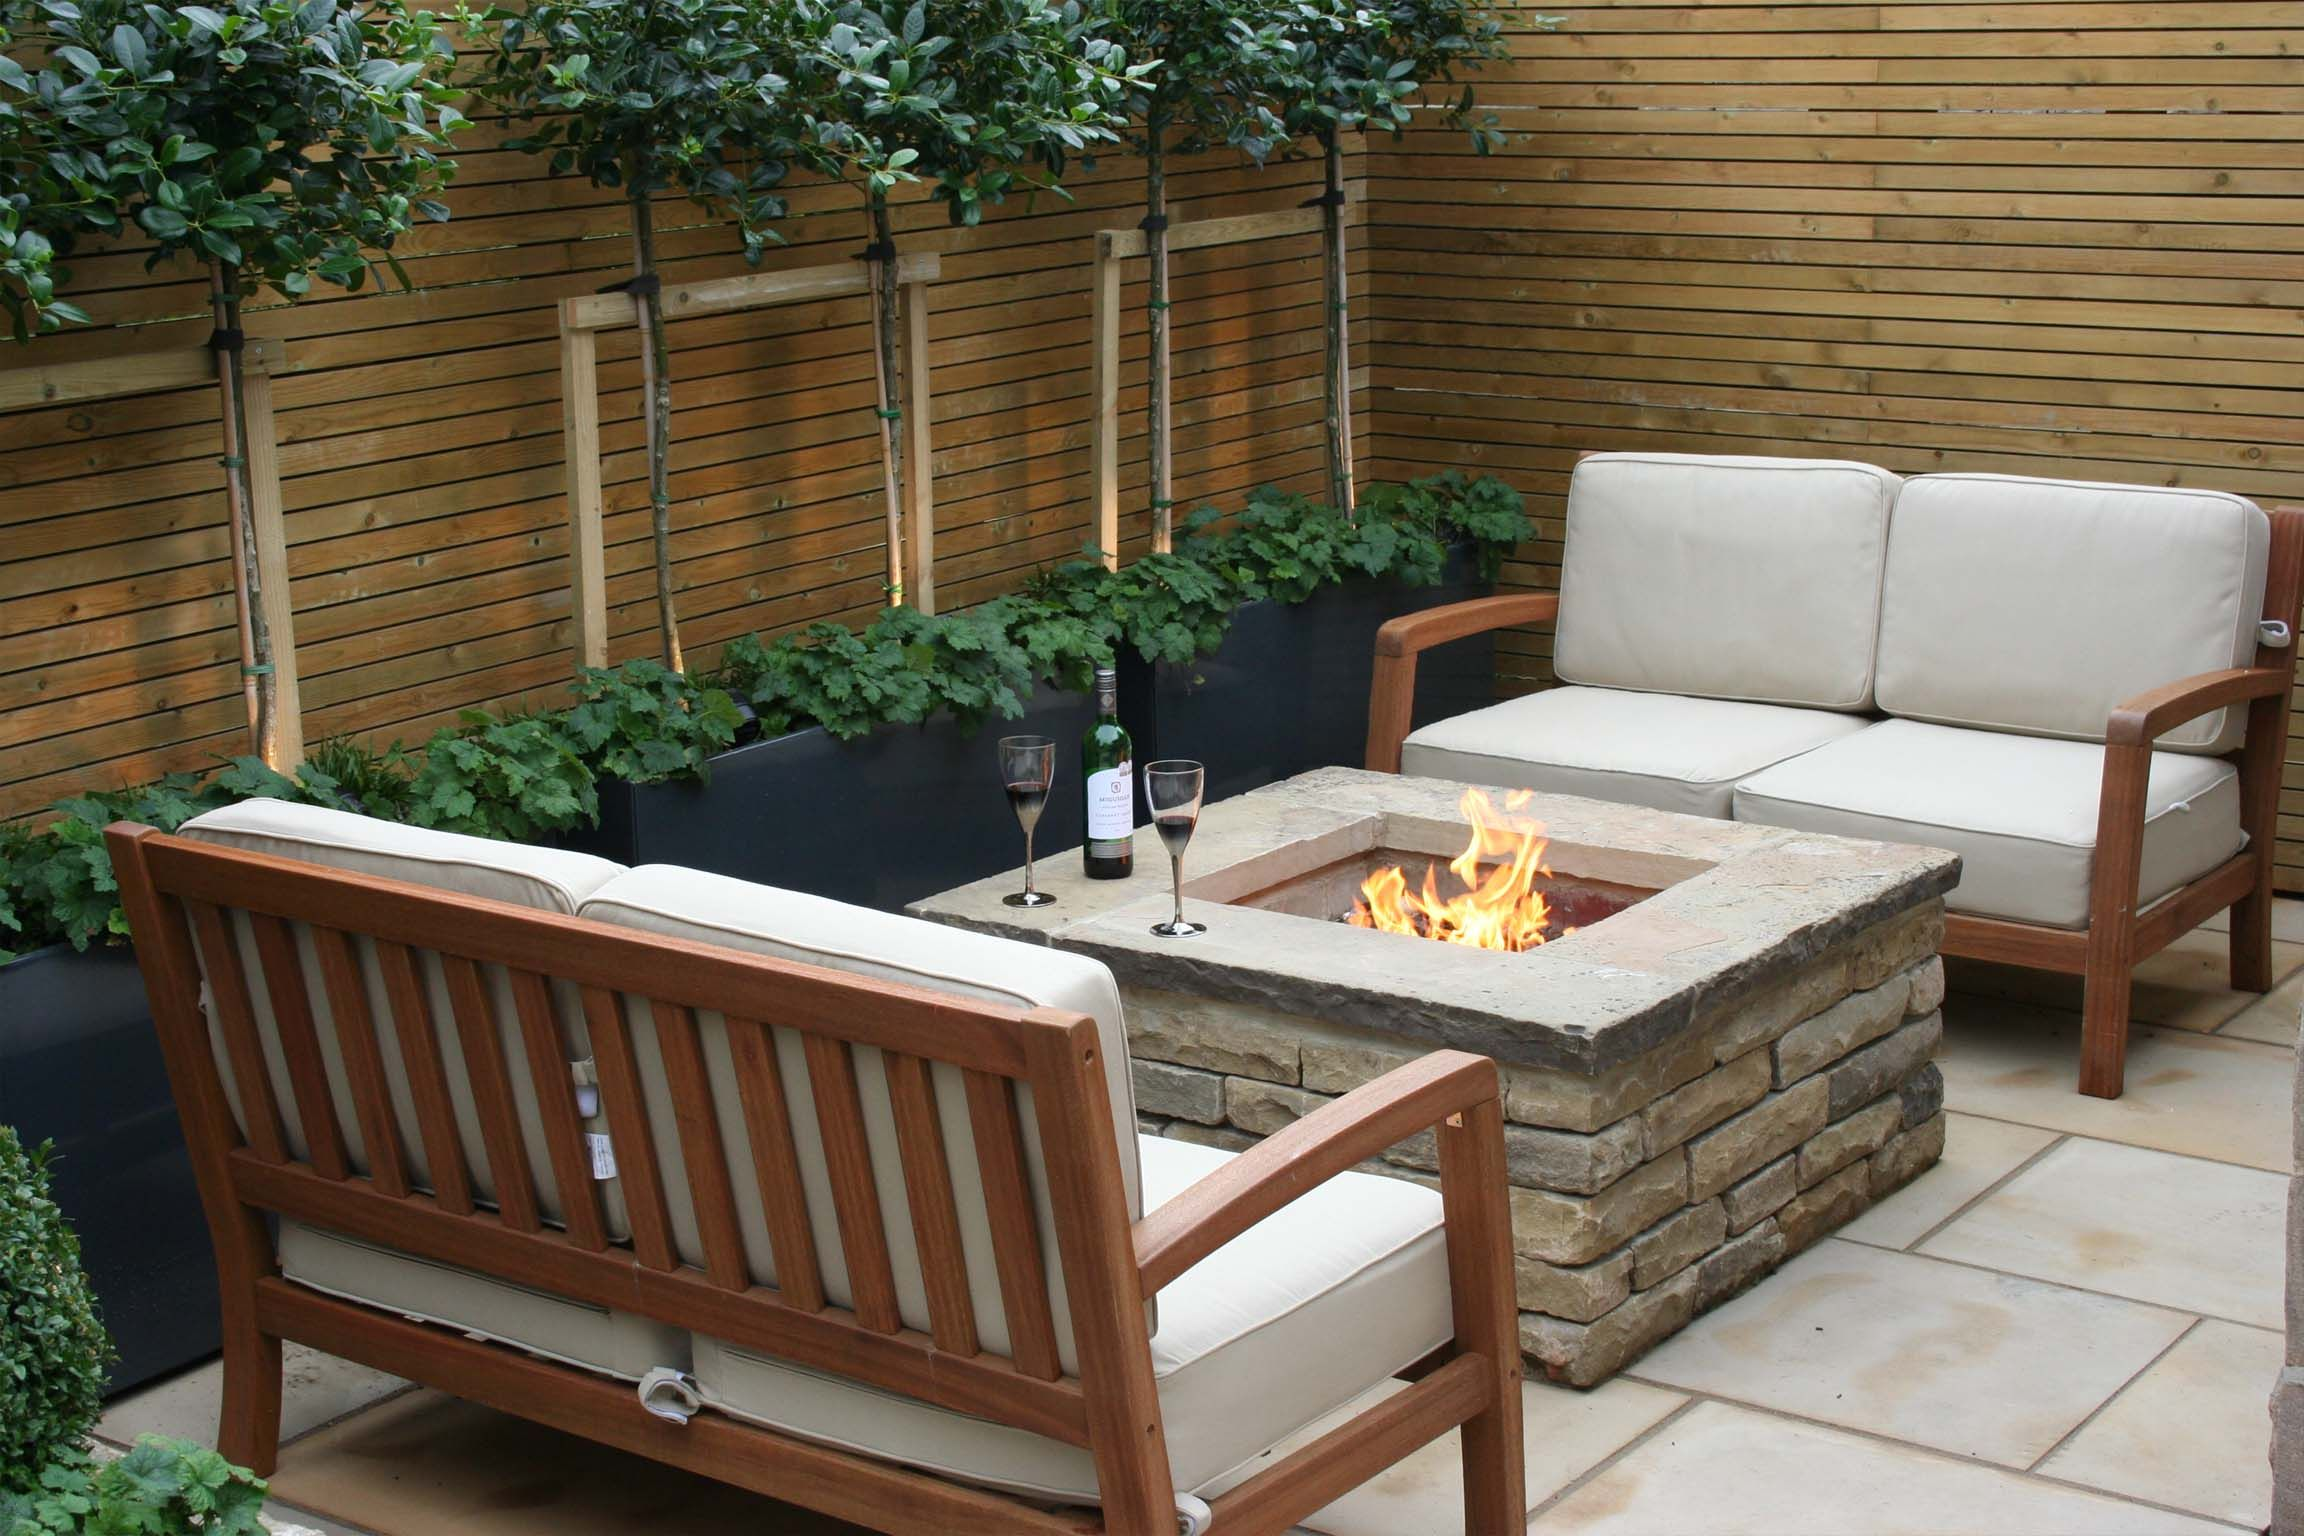 Urban-chic-courtyard-garden-outdoor-fire-pit-outdoor-sofas